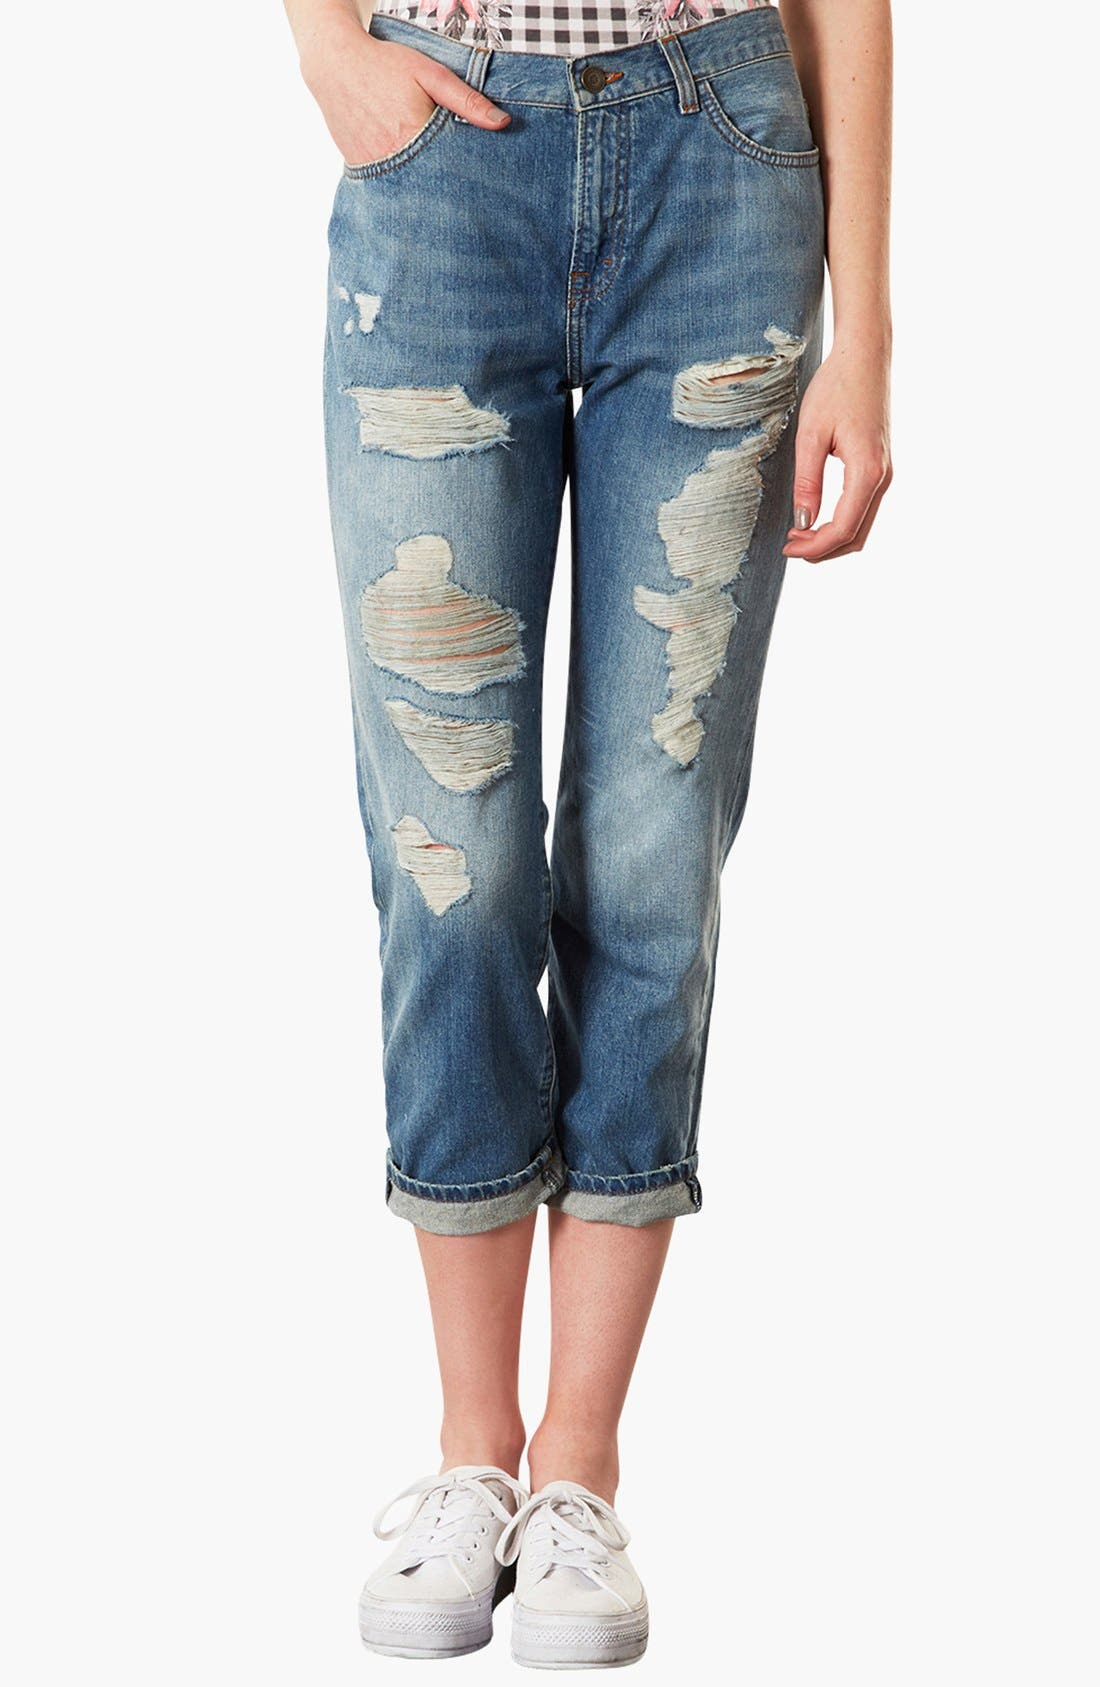 Alternate Image 1 Selected - Topshop Moto 'Kevin' Ripped Boyfriend Jeans